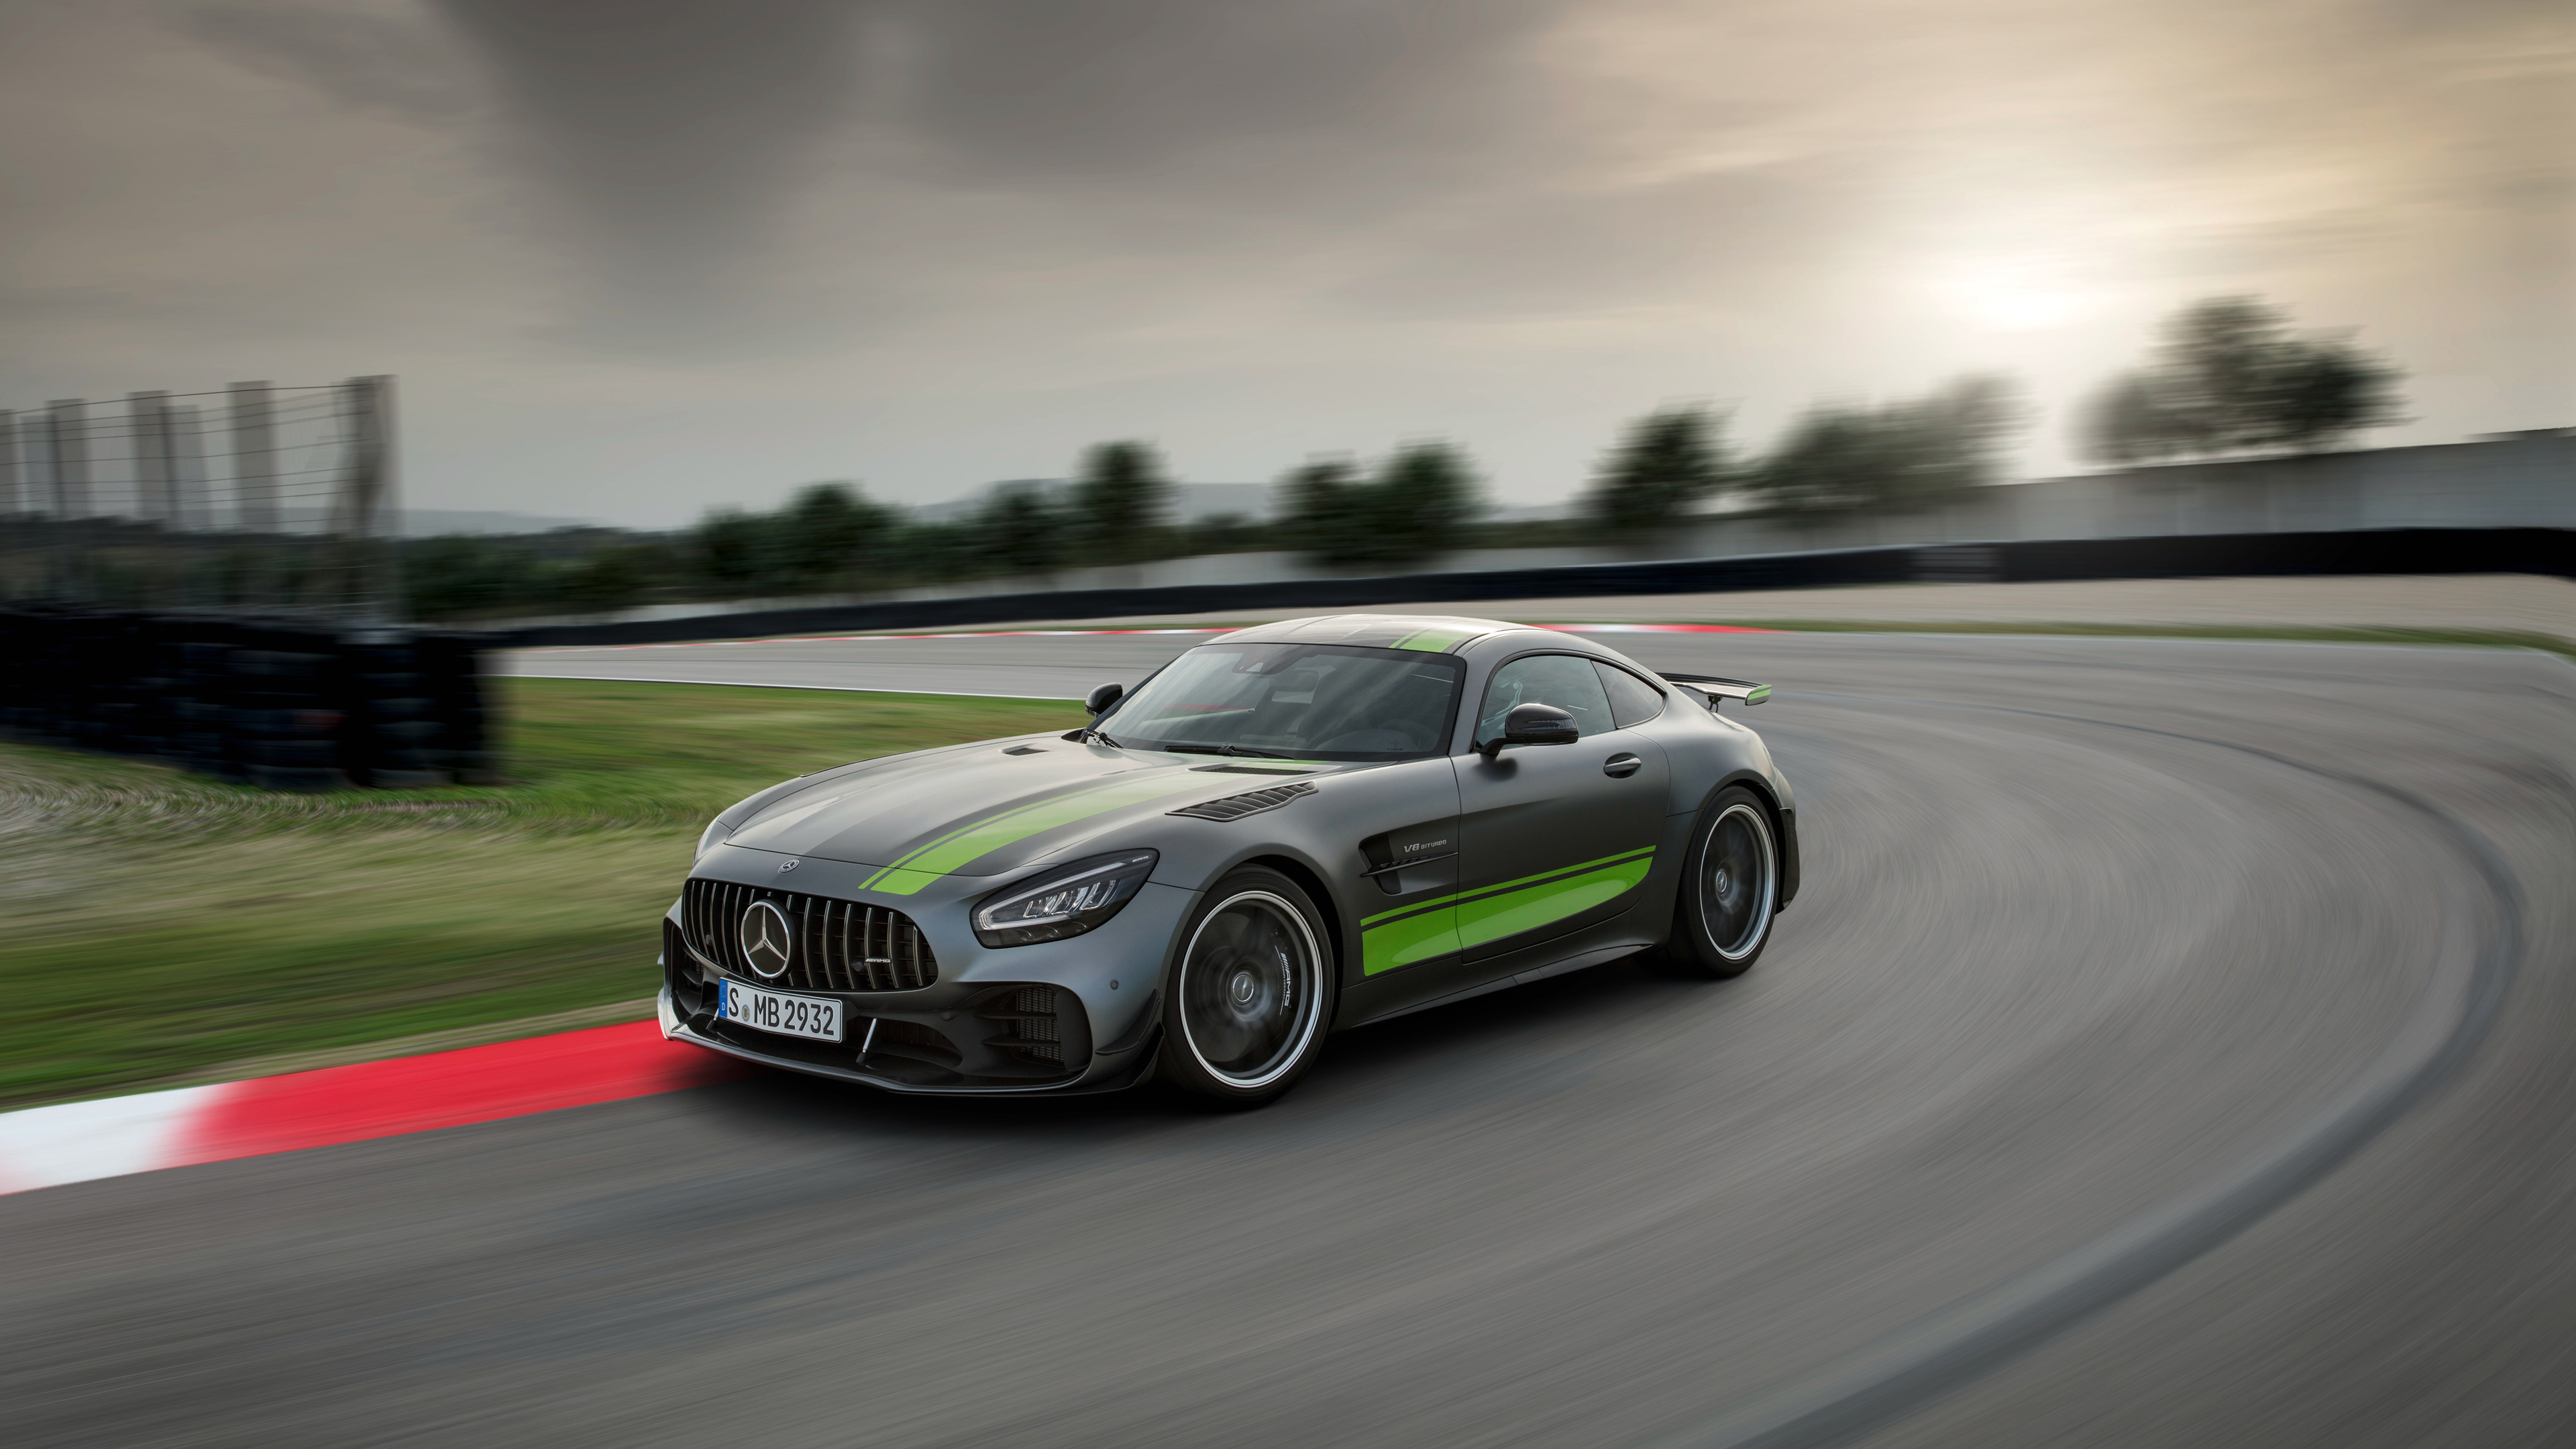 Wallpaper 4k Mercedes Amg Gt R Pro 2019 4k 2019 Cars